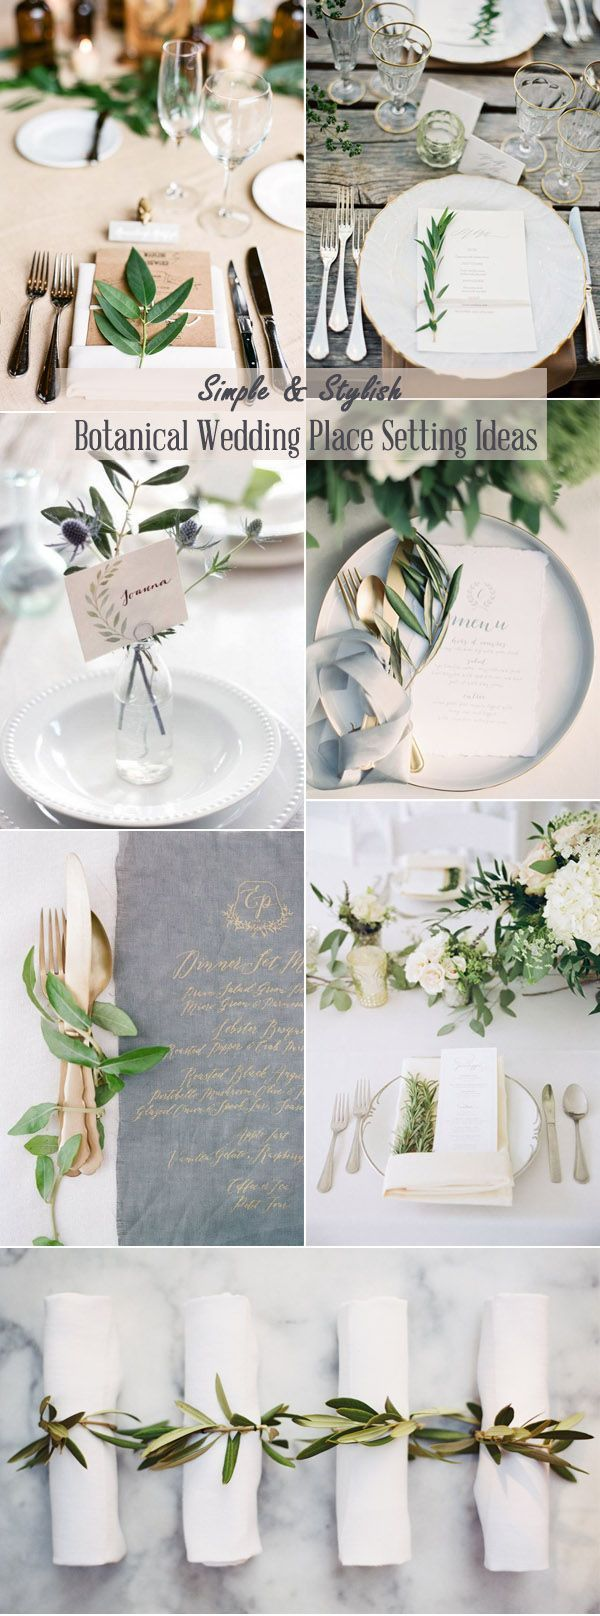 265 best diy wedding images on Pinterest | Books, Creative ideas and ...